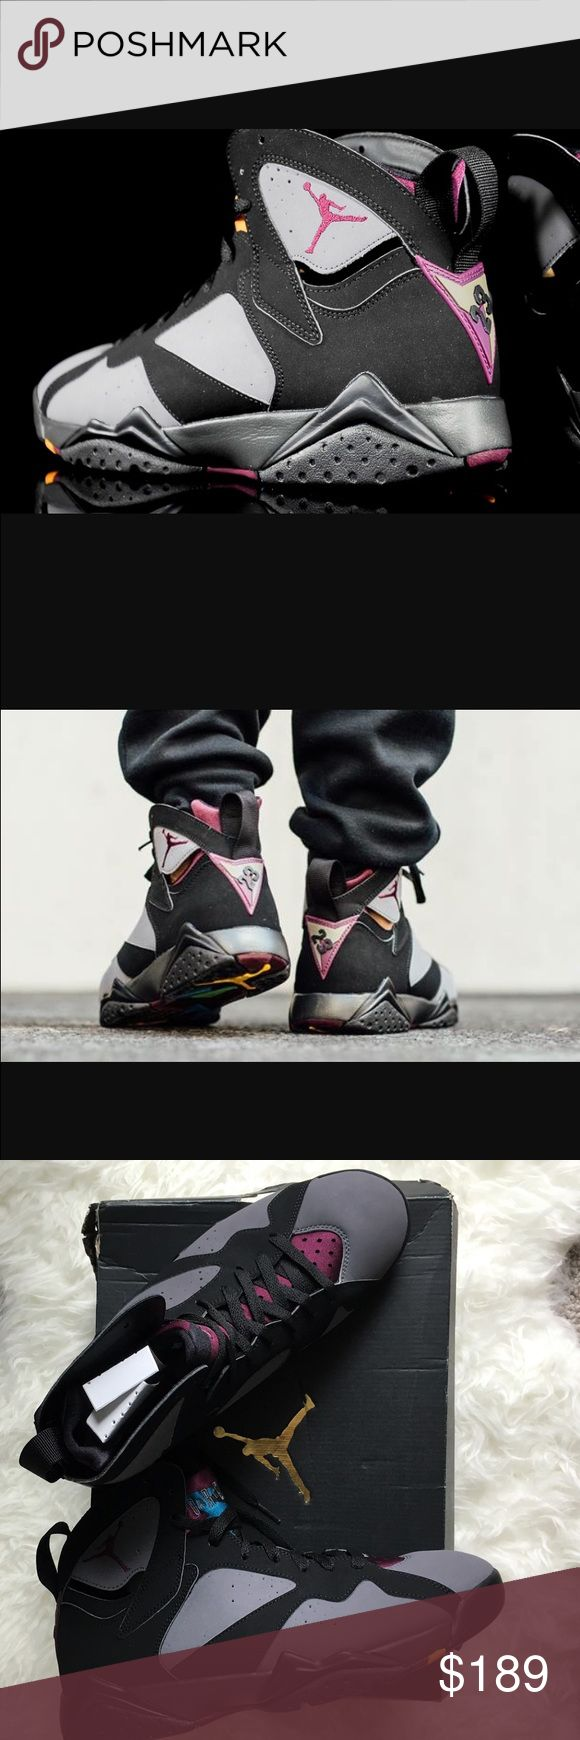 NIKE AIR JORDAN 7 RETRO MEN SHOES Brand new with original box. Nike Air Jordan 7 Retro Bordeaux men shoes. Nike Shoes